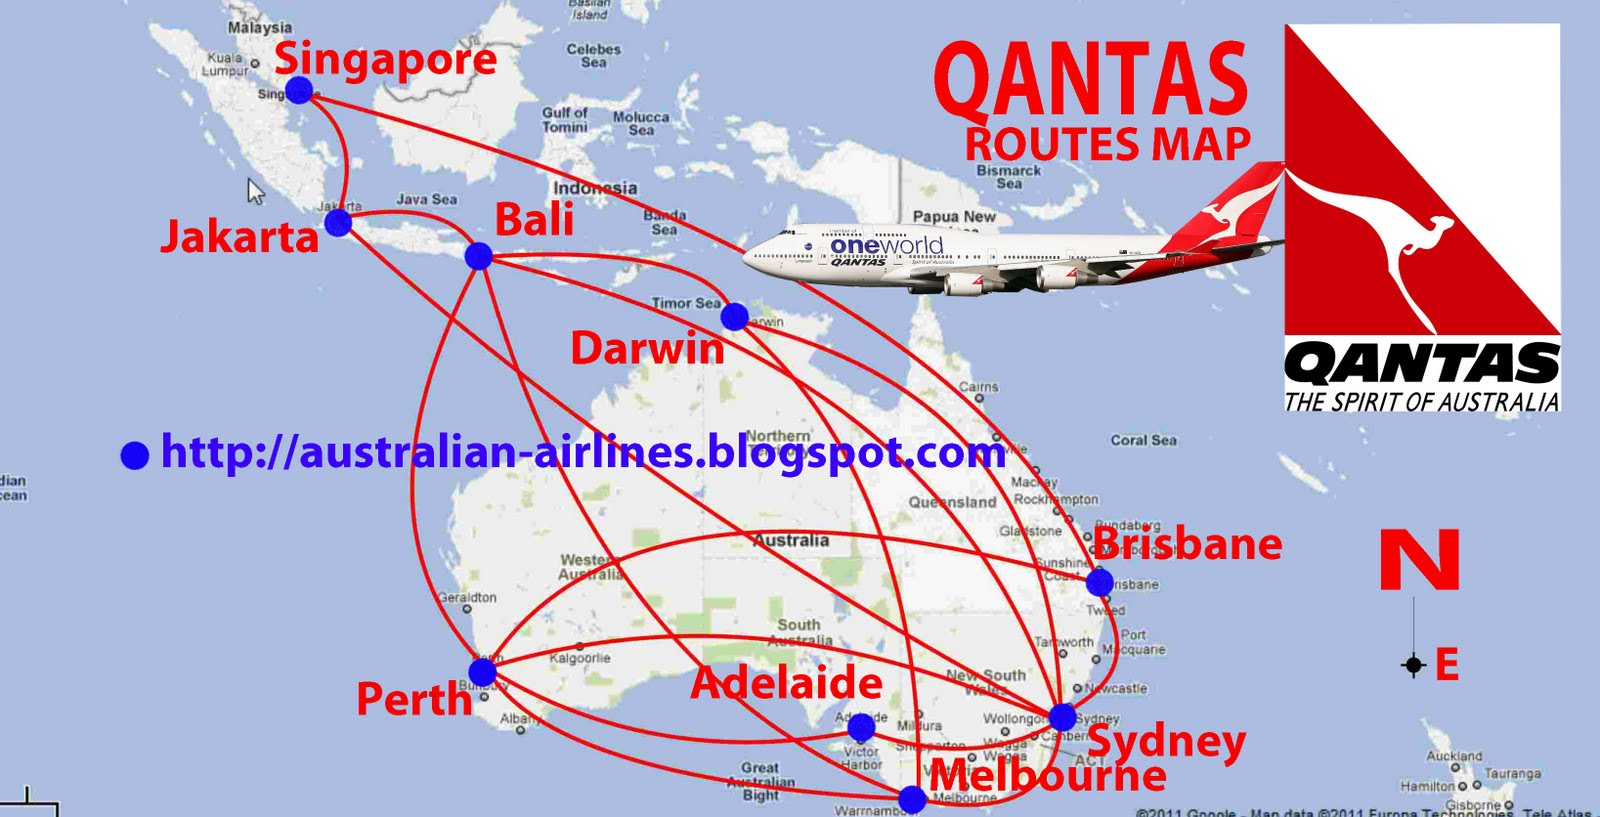 british airways route map usa with Qantas Routes Map on New Seats Are The Same As The A330 777 200 in addition 3863 together with Qantas Routes Map besides Long Haul Flights To Southeast Asia moreover Air New Zealand Nz.